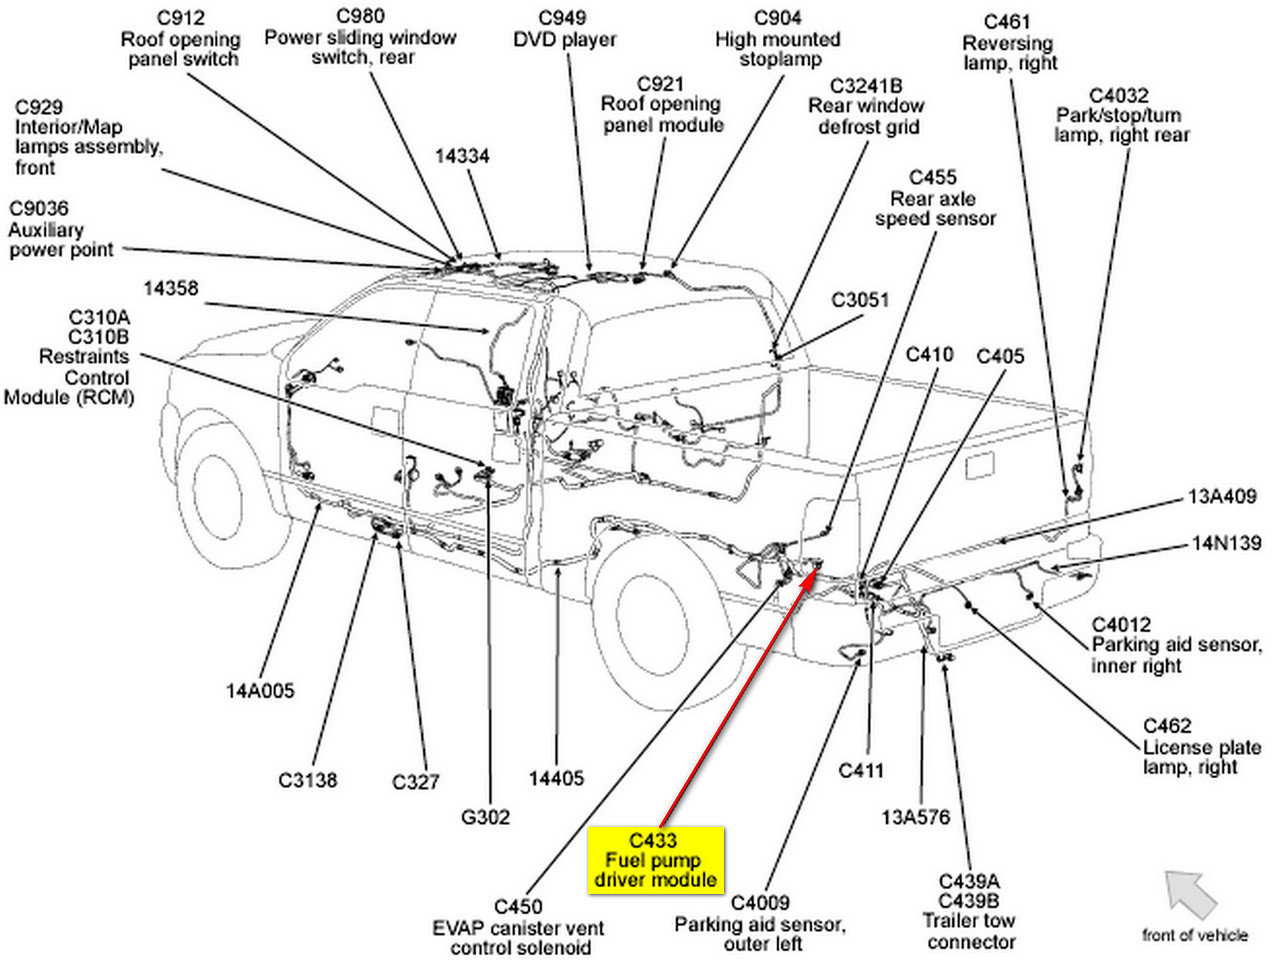 2006 Ford F 150 Fuel System Diagram Wiring Libraries 1996 Engine Sensor F150 Dual Tank Simple Schema1995